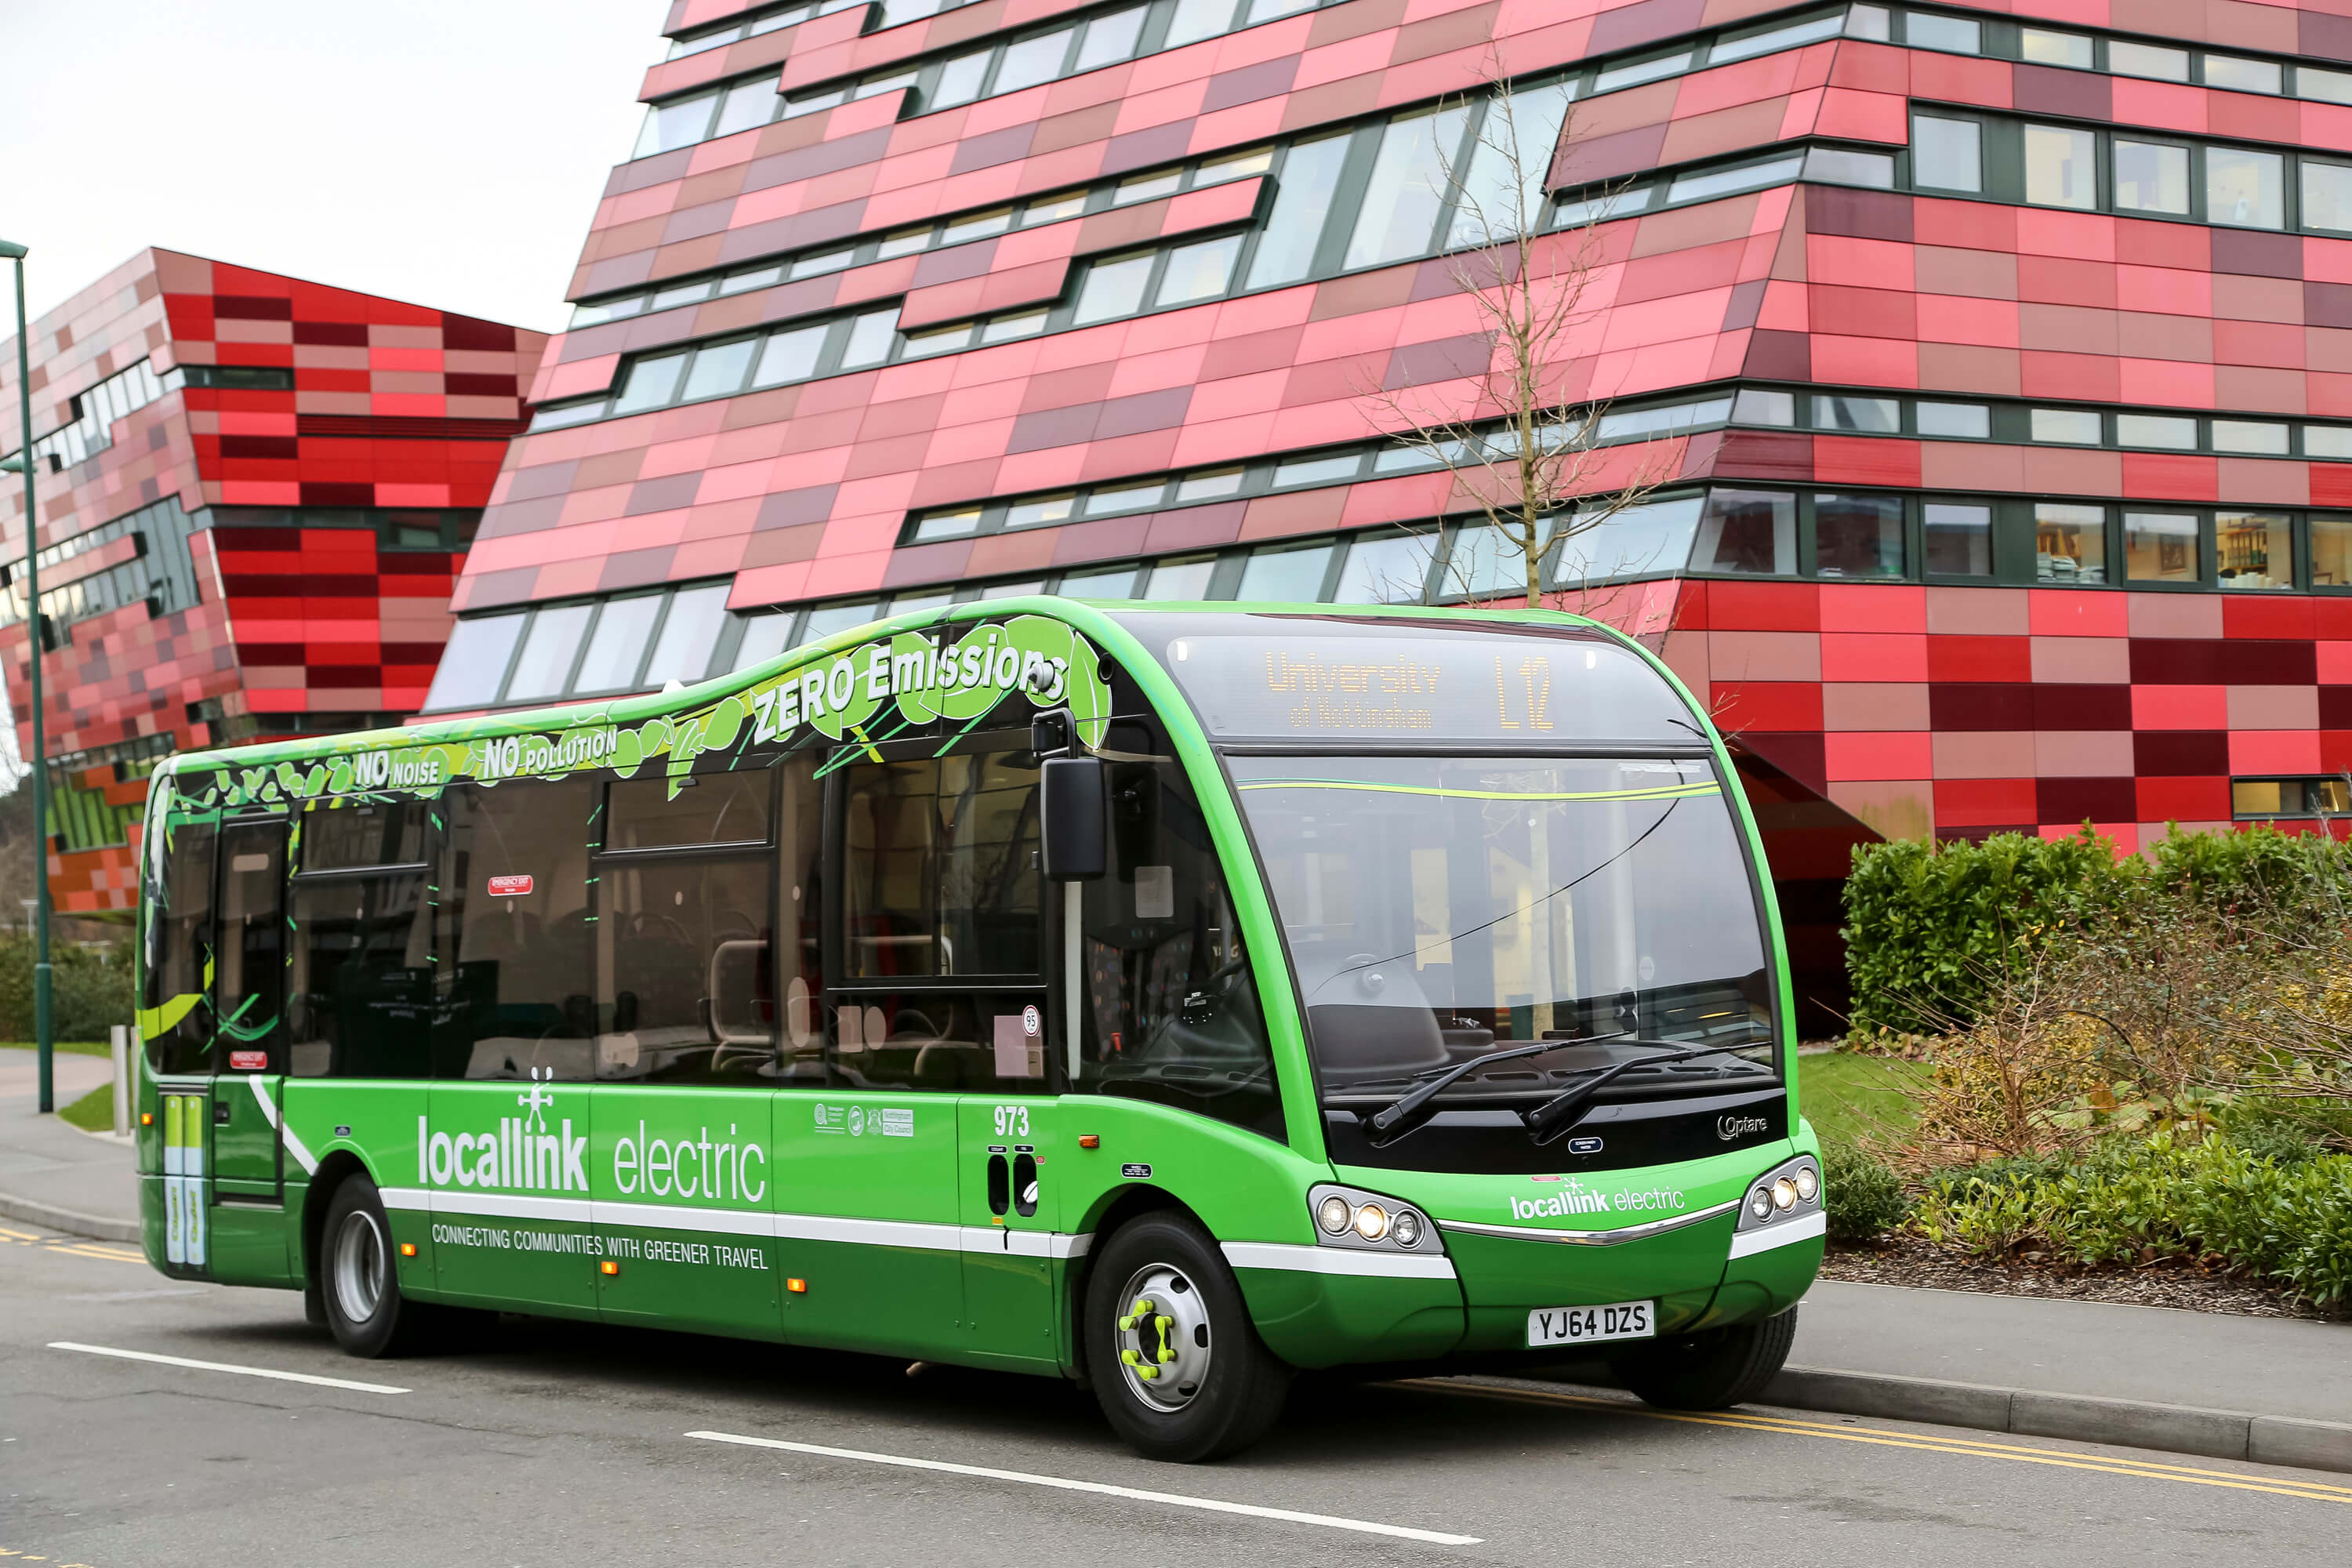 Locallink bus at University of Nottingham